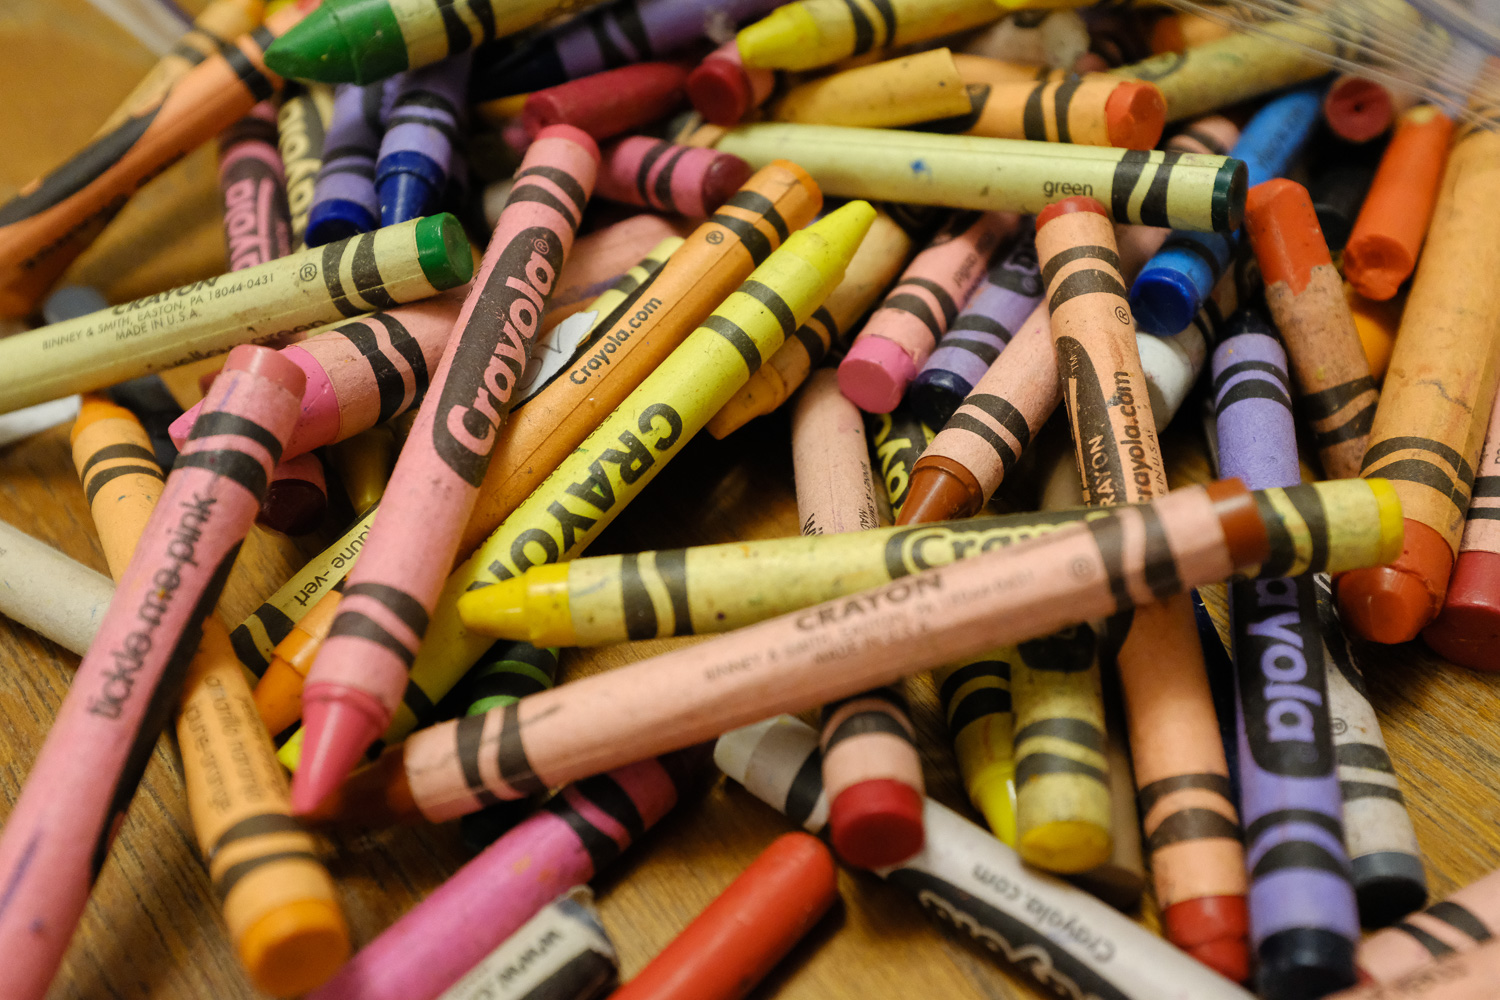 Image: I ramped up the in-camera sharpening to get a clean, crisp image of these crayons. The foregr...